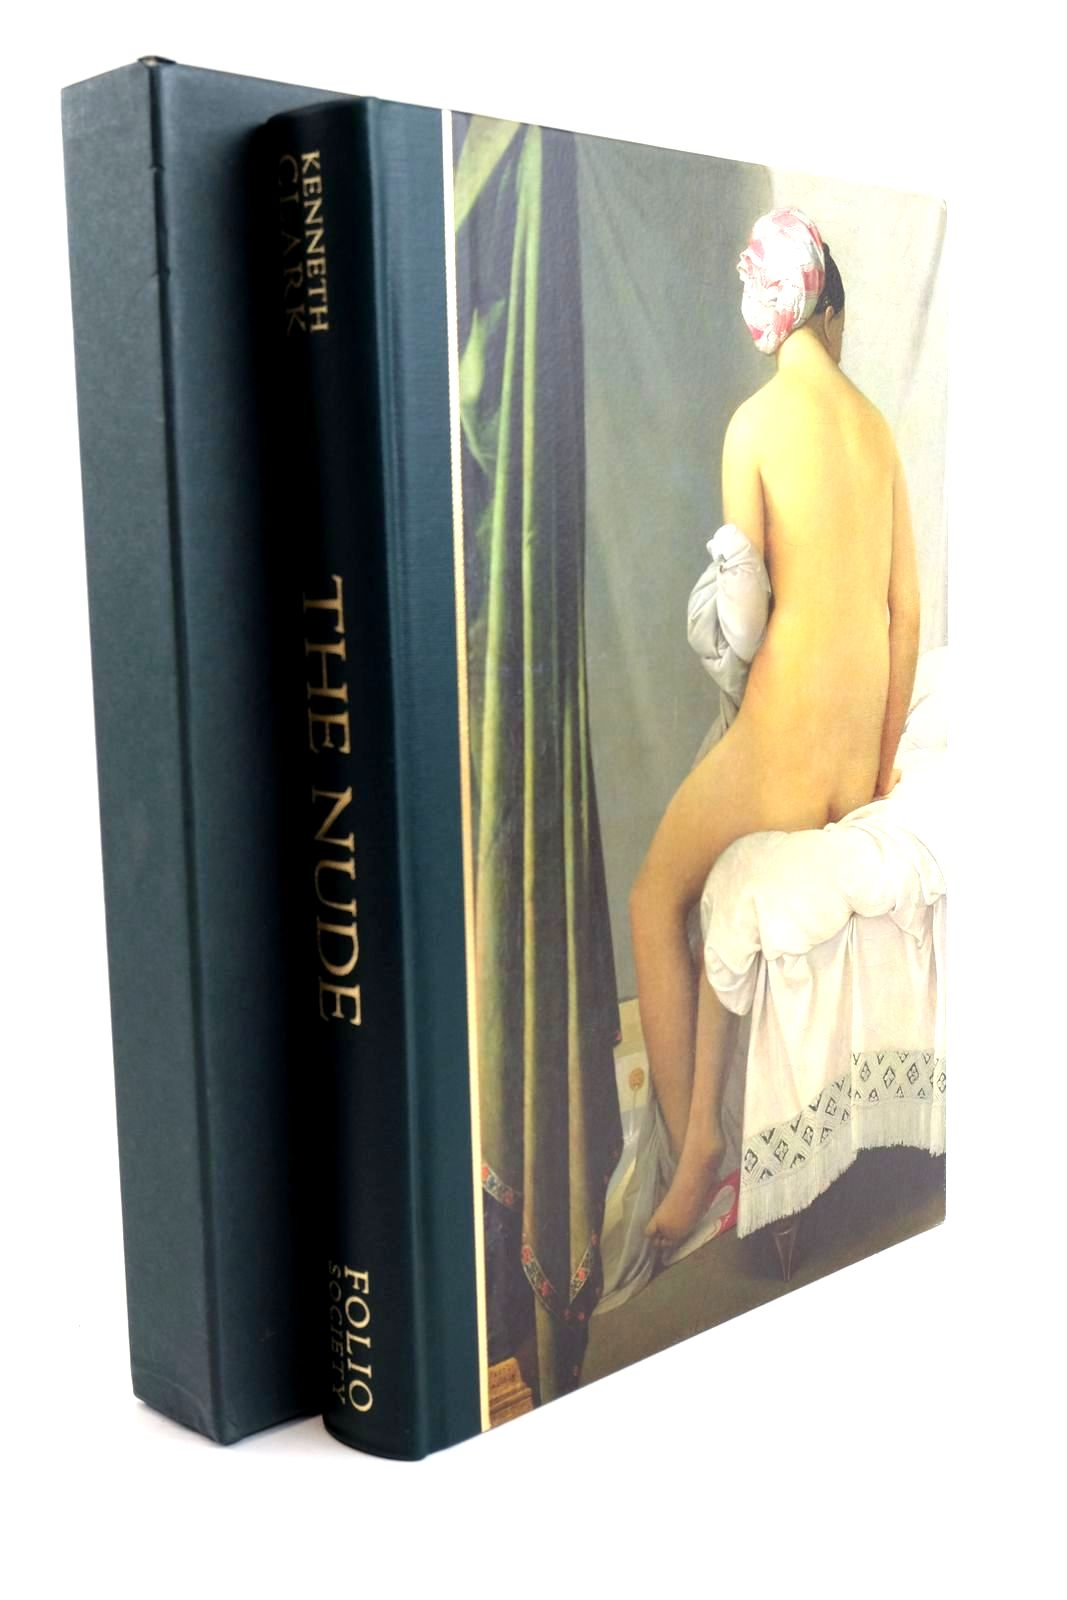 Photo of THE NUDE written by Clark, Kenneth published by Folio Society (STOCK CODE: 1320502)  for sale by Stella & Rose's Books